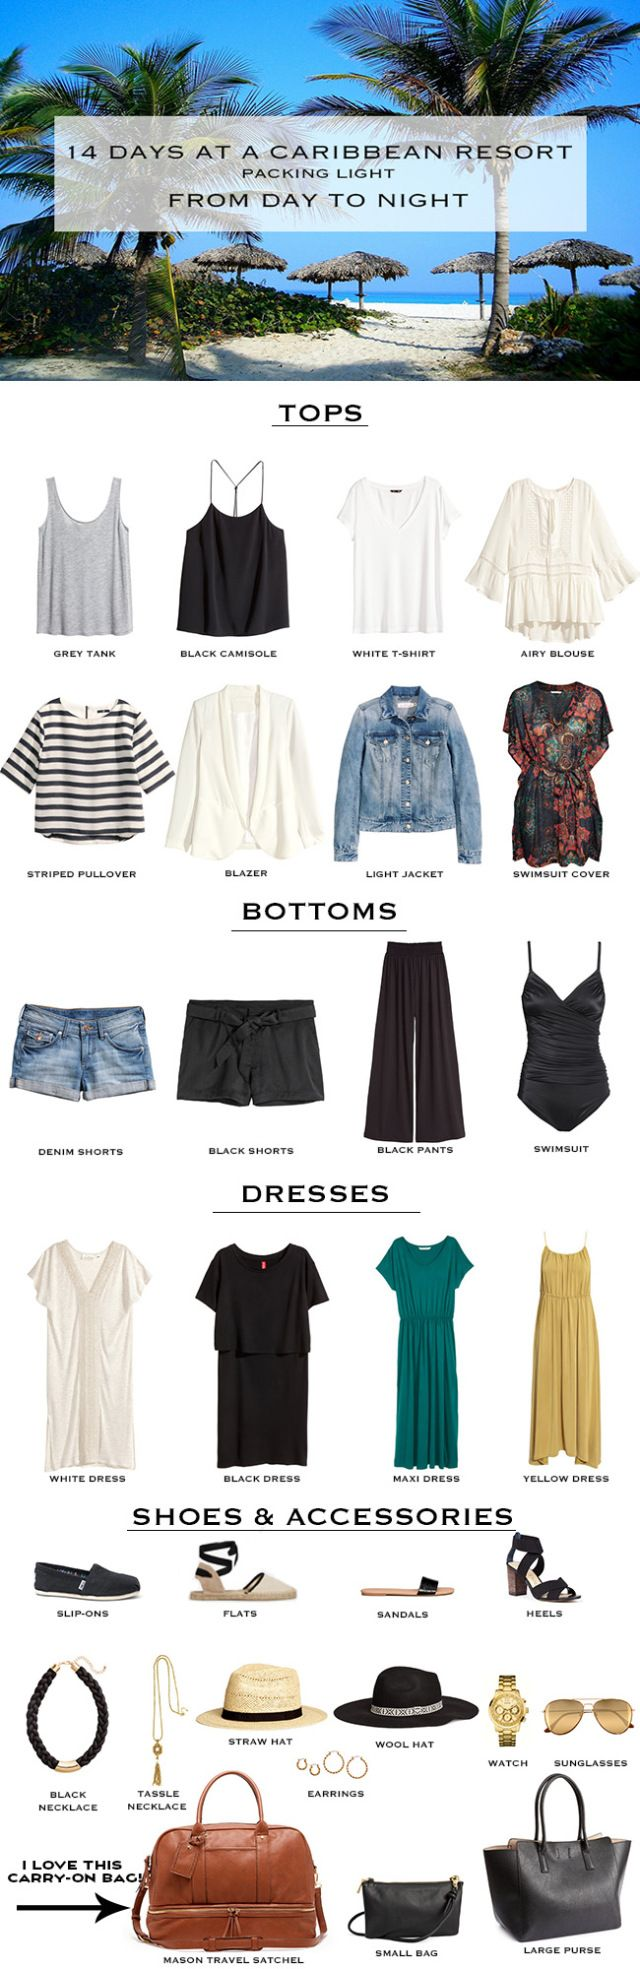 !4 Day Caribbean Resort Packing List. Packing Light, Packing in a carry-on. #travellight #packinglight #packinglist